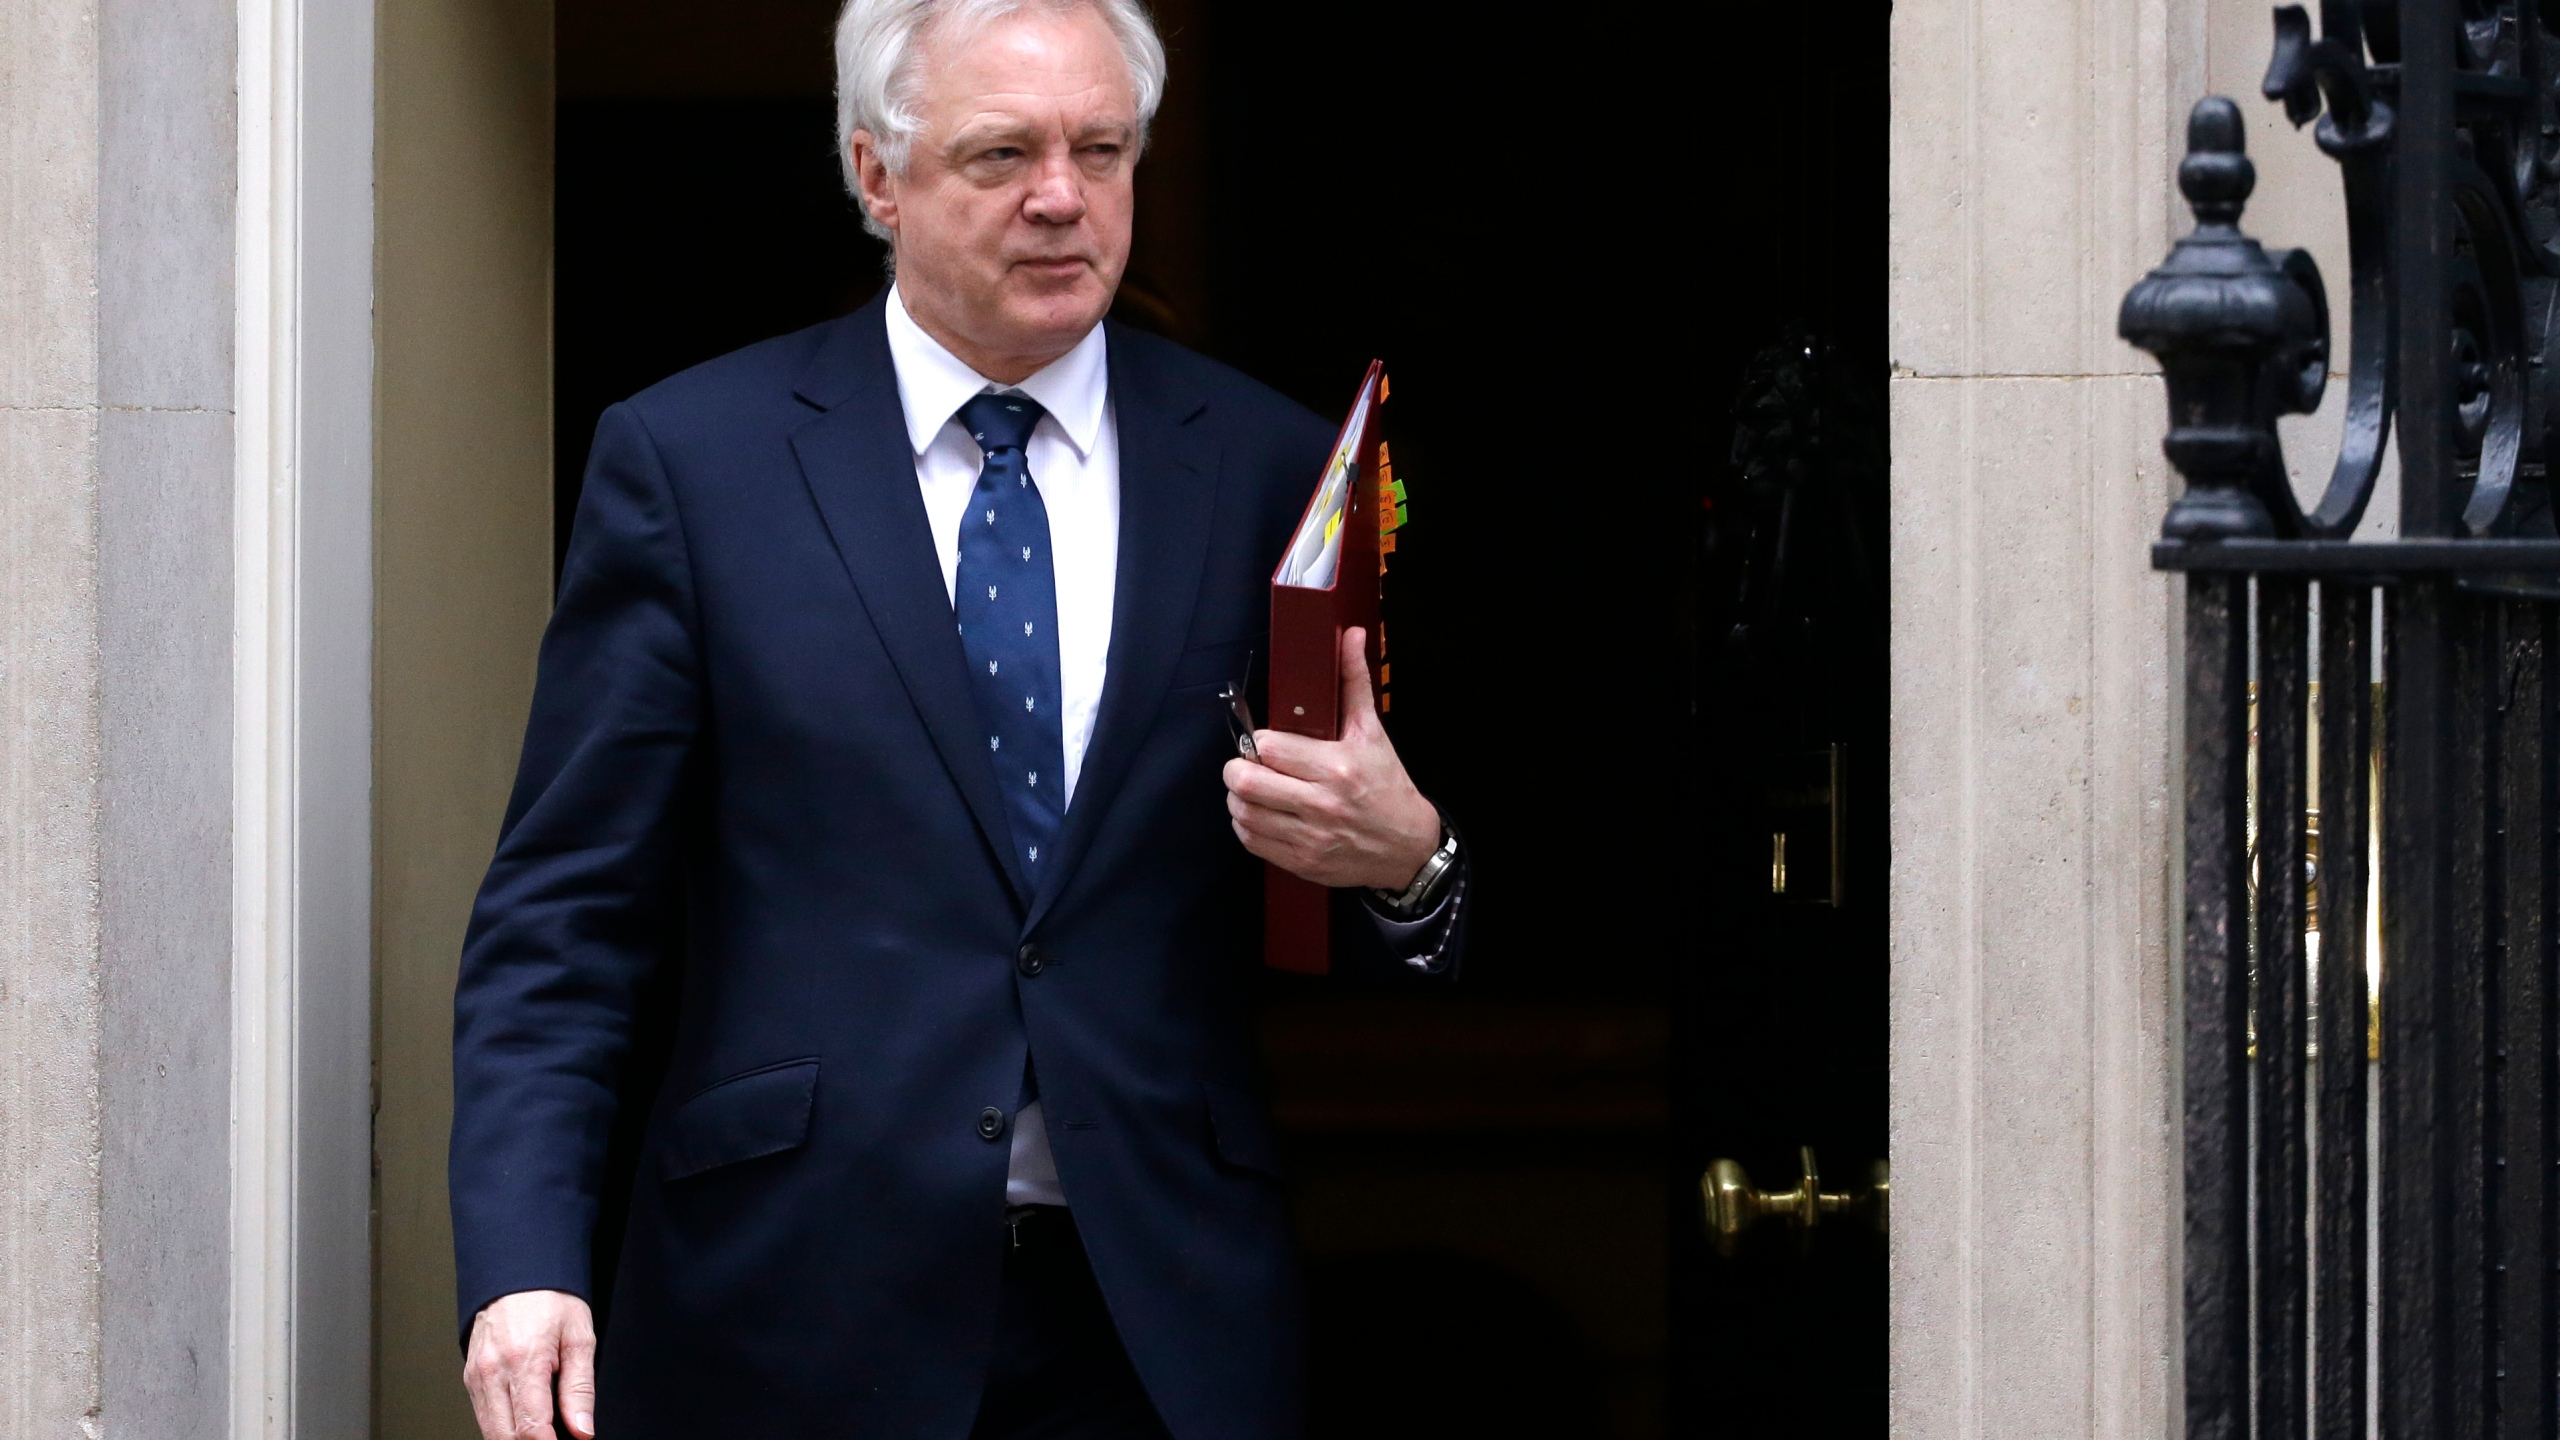 Britain Brexit, David Davis Photo by Alastair Grant, AP Photo_305930